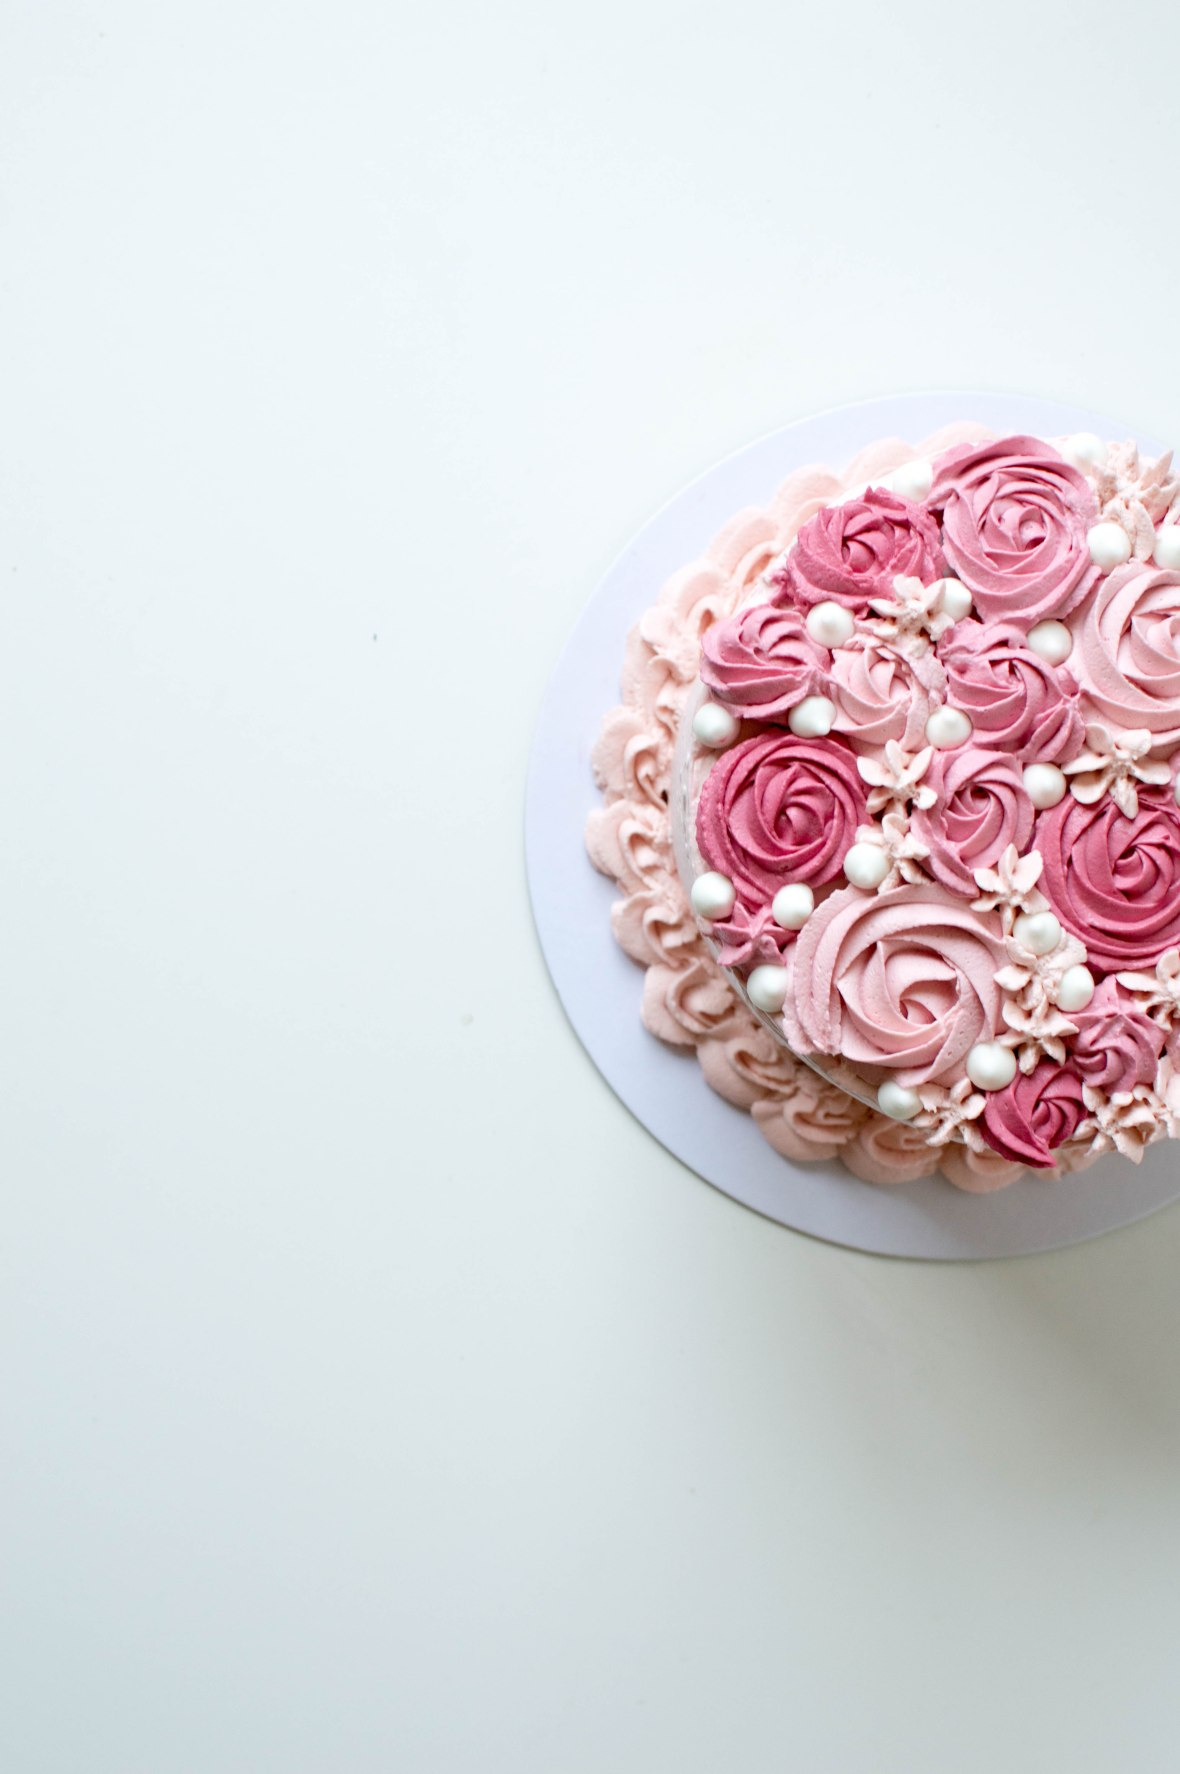 Rose Icing On A Pink Raspberry Cake - Kay's Kitchen